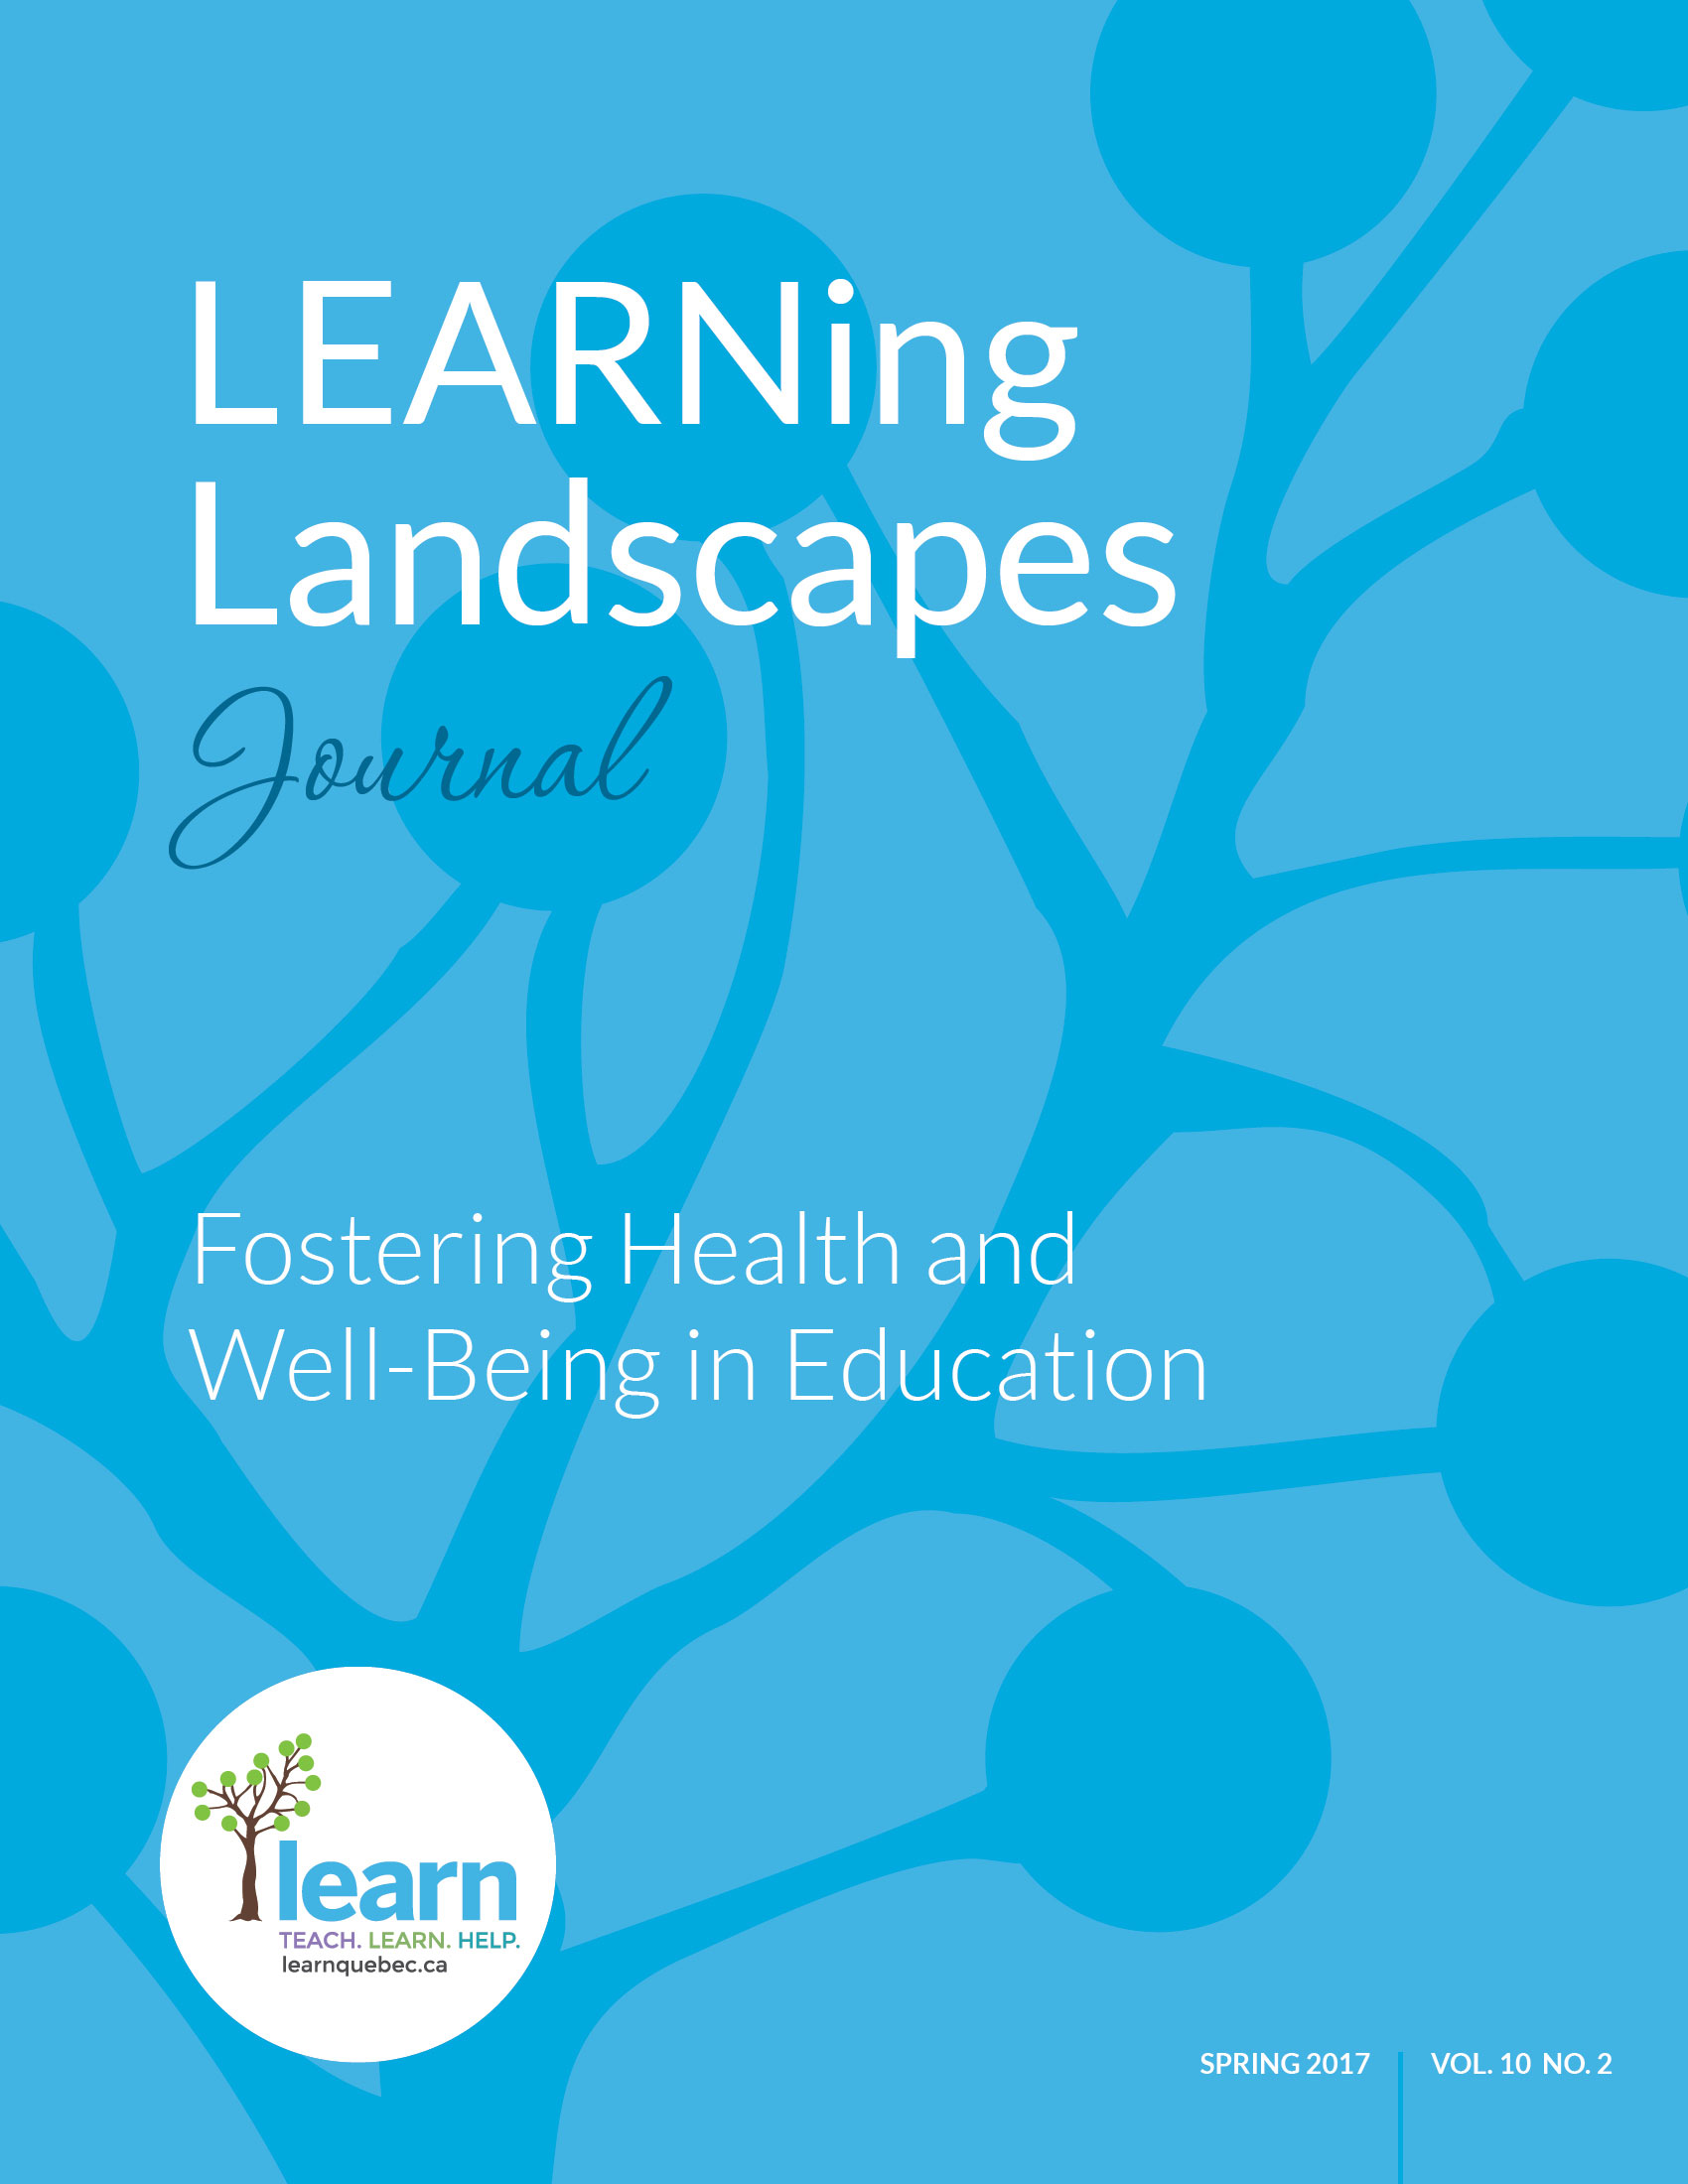 Vol 10 No 2 (2017): Fostering Health and Well-Being in Education